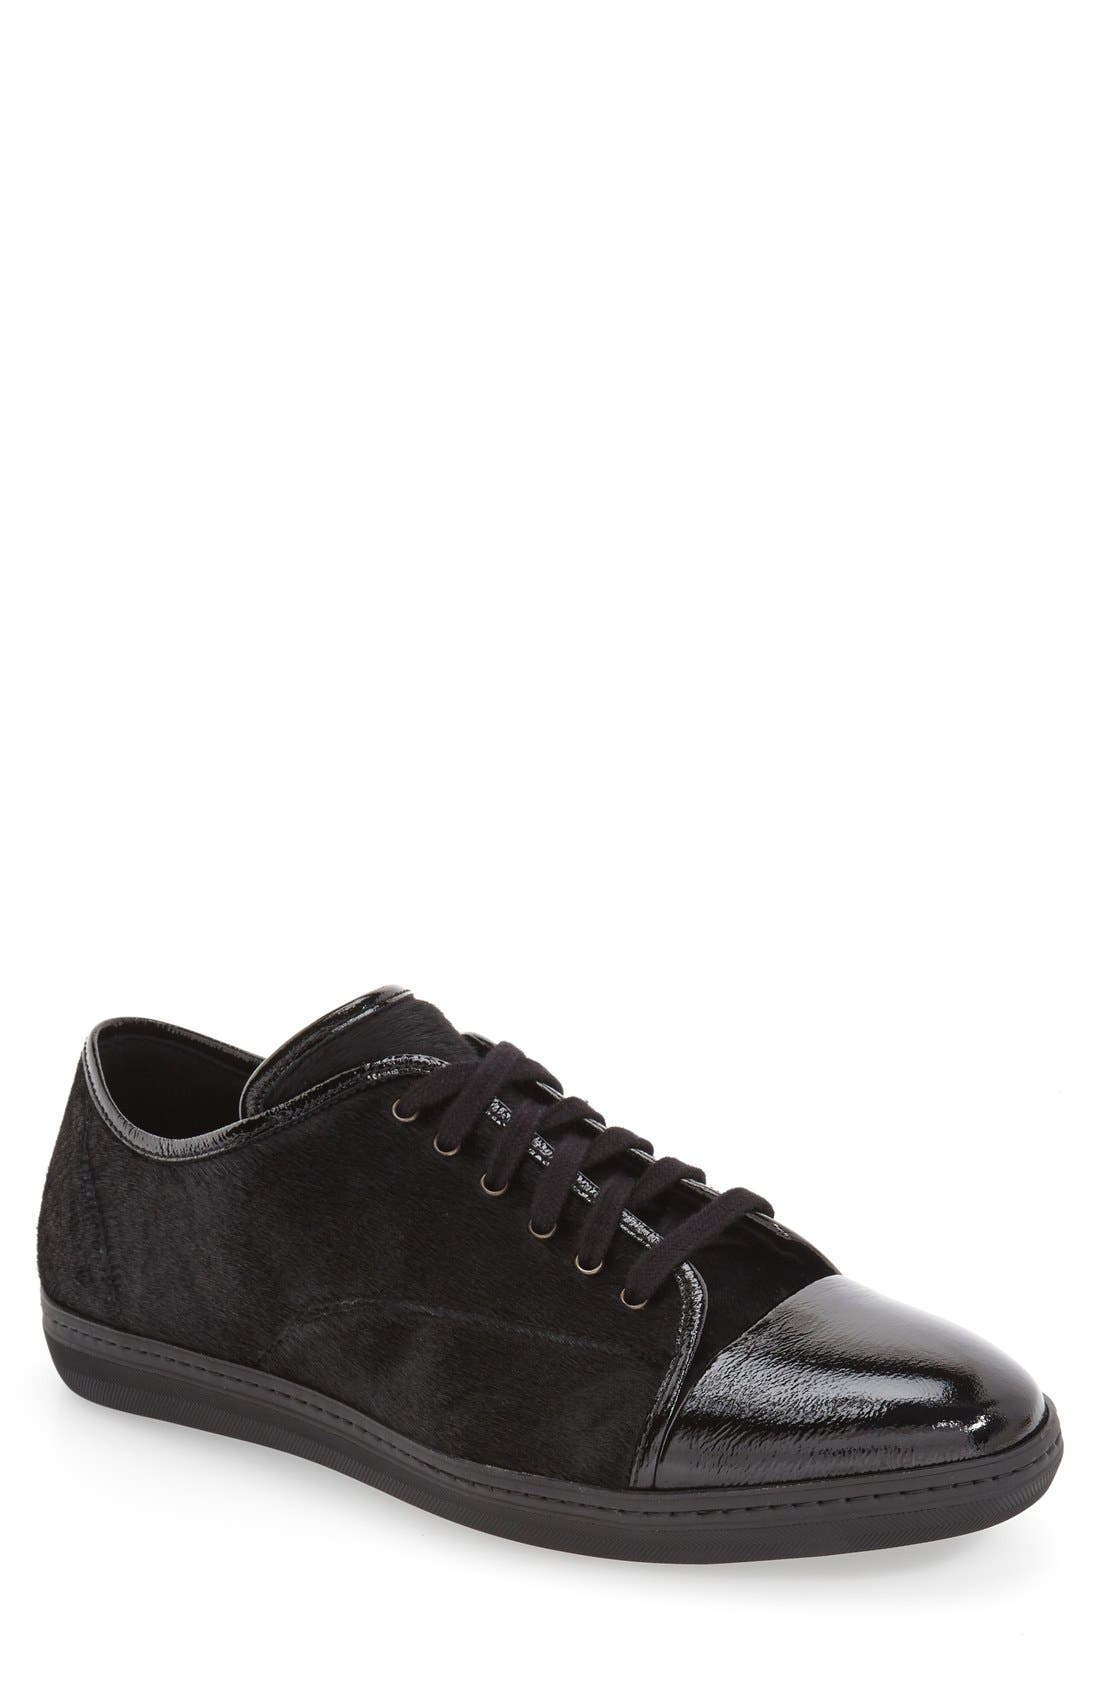 'Scala' Genuine Calf Hair Sneaker,                         Main,                         color, 001